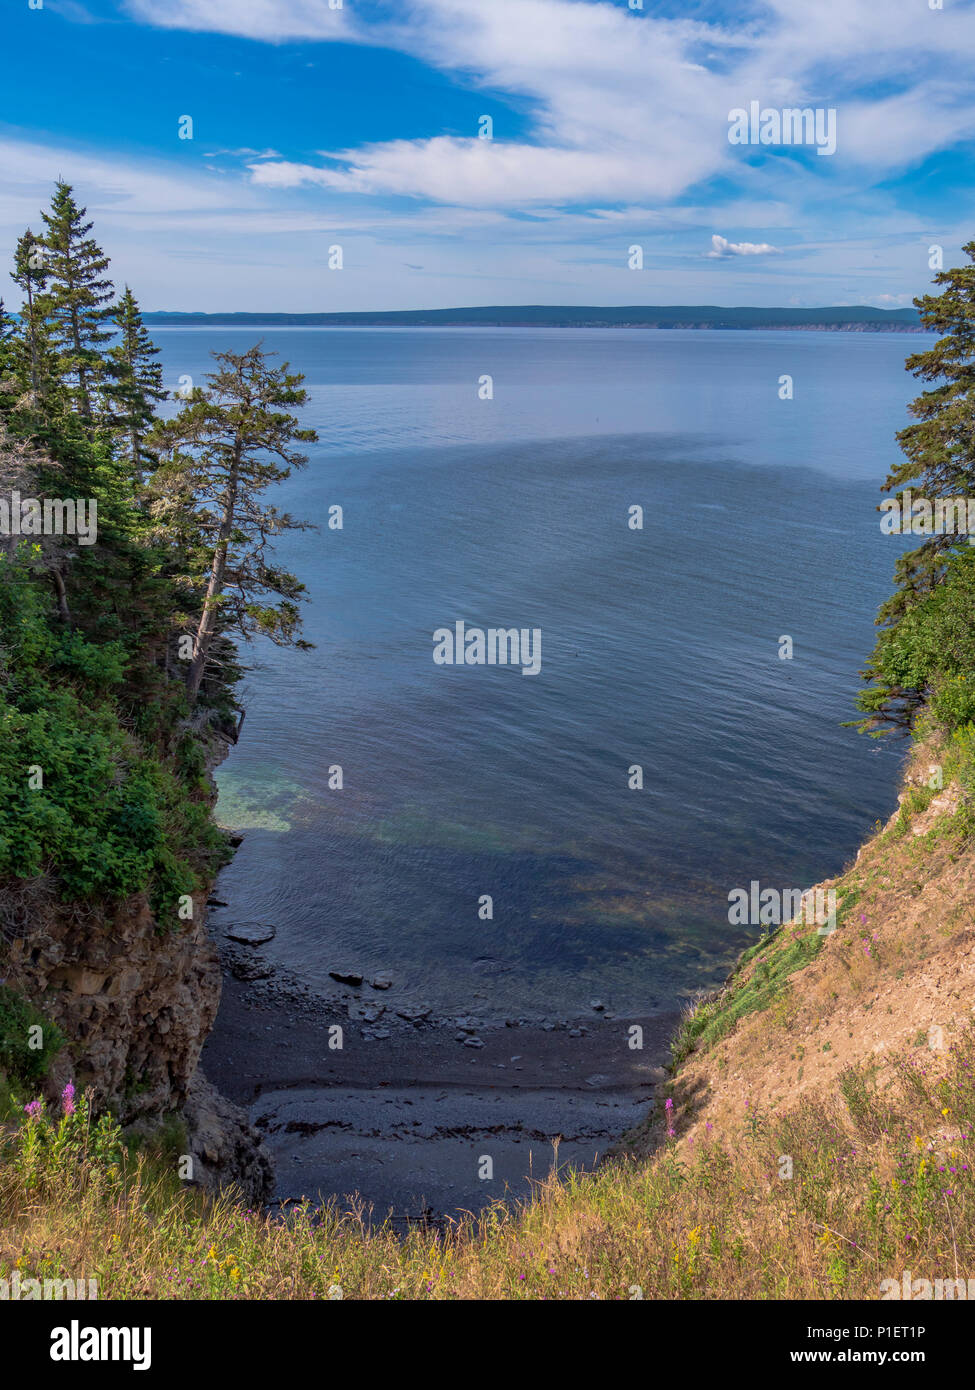 Inlet, Le Graves Trail, Forillon National Park, Gaspe Peninsula, Canada. - Stock Image